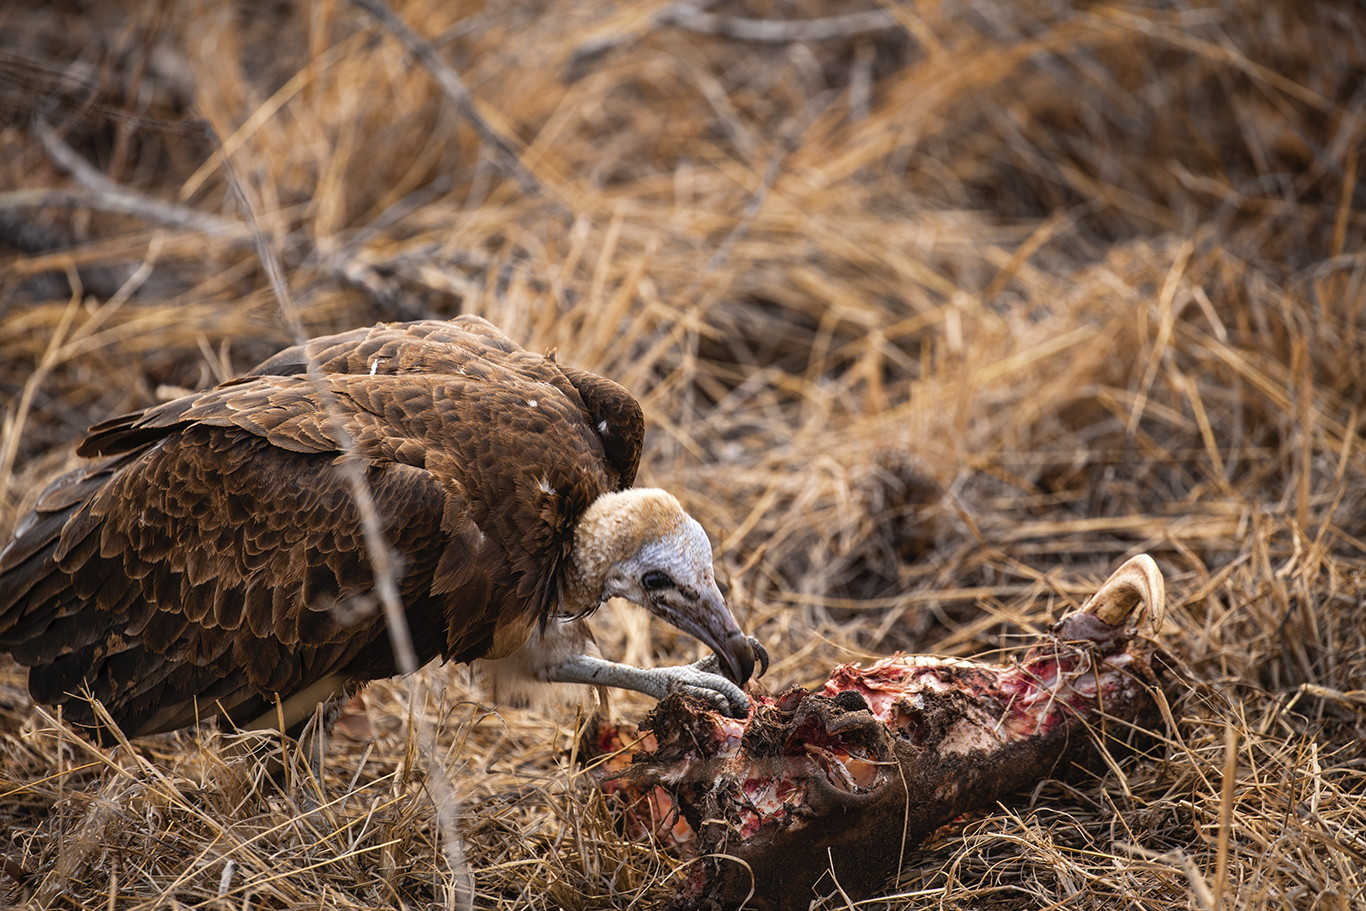 Vulture with Remains of Warthog from a Lion Kill